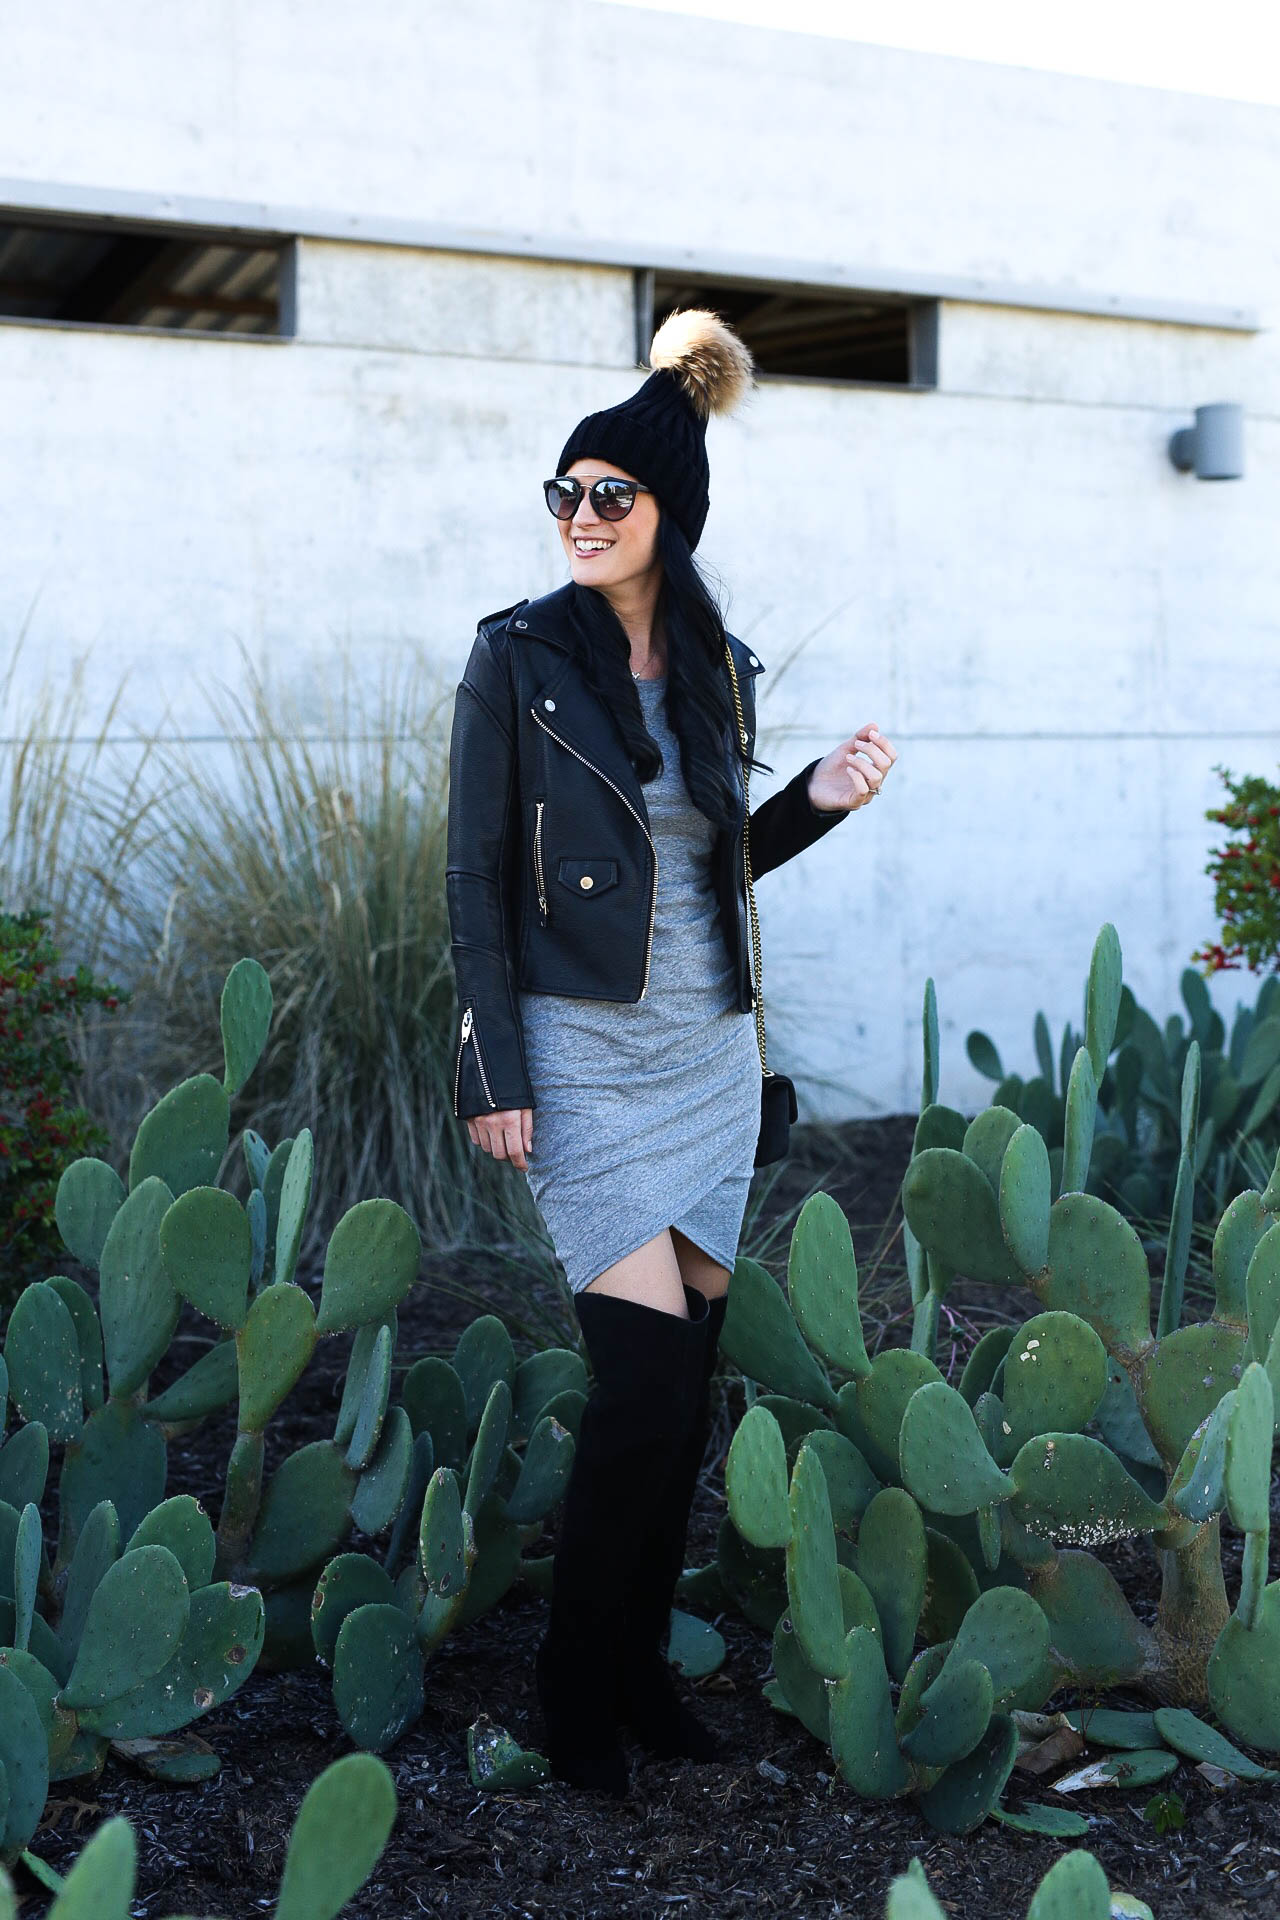 Ruched Long Sleeve Dress, Black Moto Jacket, Ruby Suede Over the Knee Boot, Henri Bendel Over the Shoulder Bag, Mirrored Sunglasses, Black Fur Pom Sweater Hat | fall style tips | what to wear for fall | cool weather fashion | fashion for fall | style tips for fall | outfit ideas for fall || Dressed to Kill #pompombeanie #leatherjacket #fallstyle